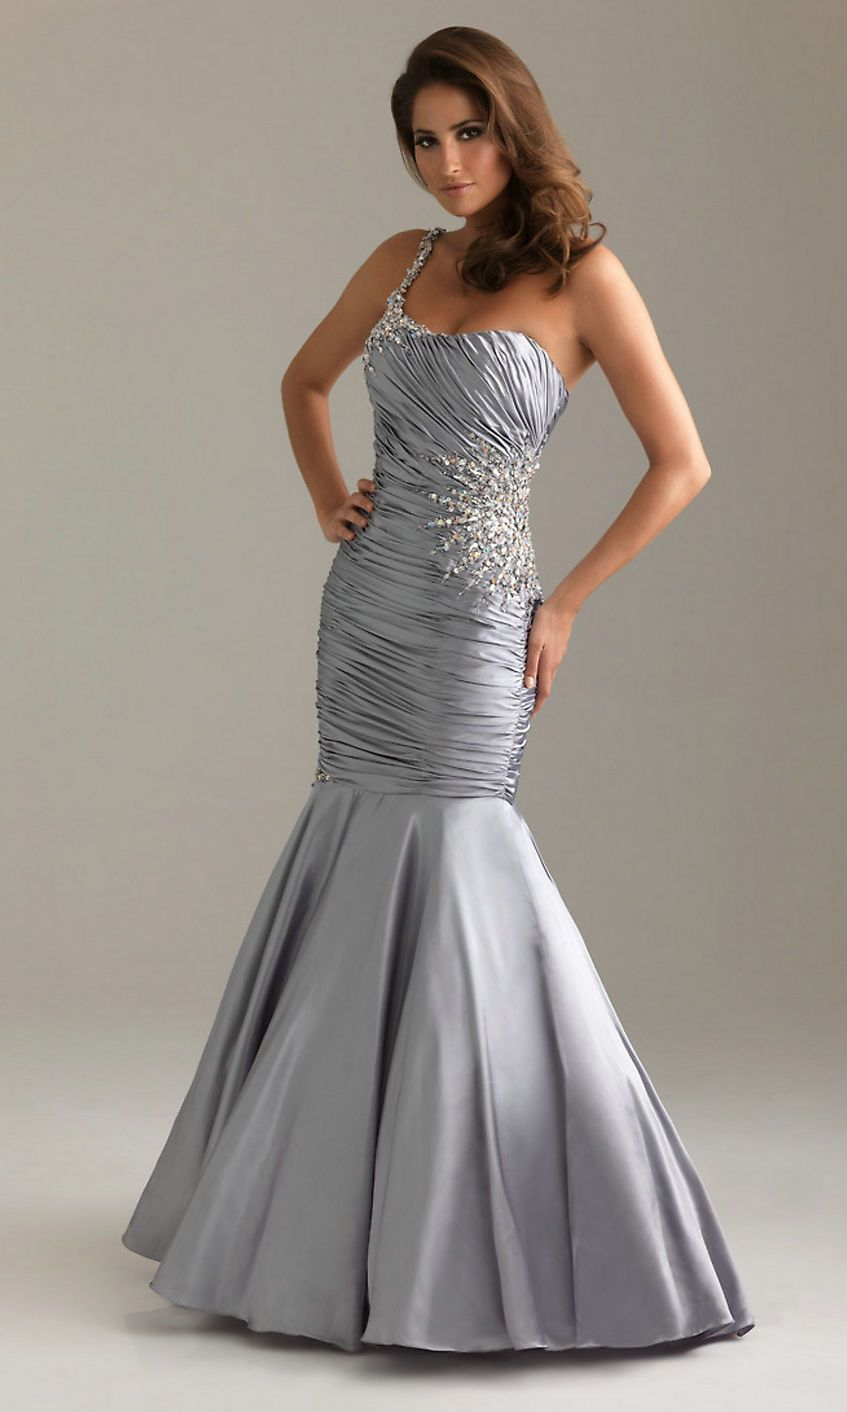 1000  images about Silver Prom Dresses on Pinterest - Rhinestones ...